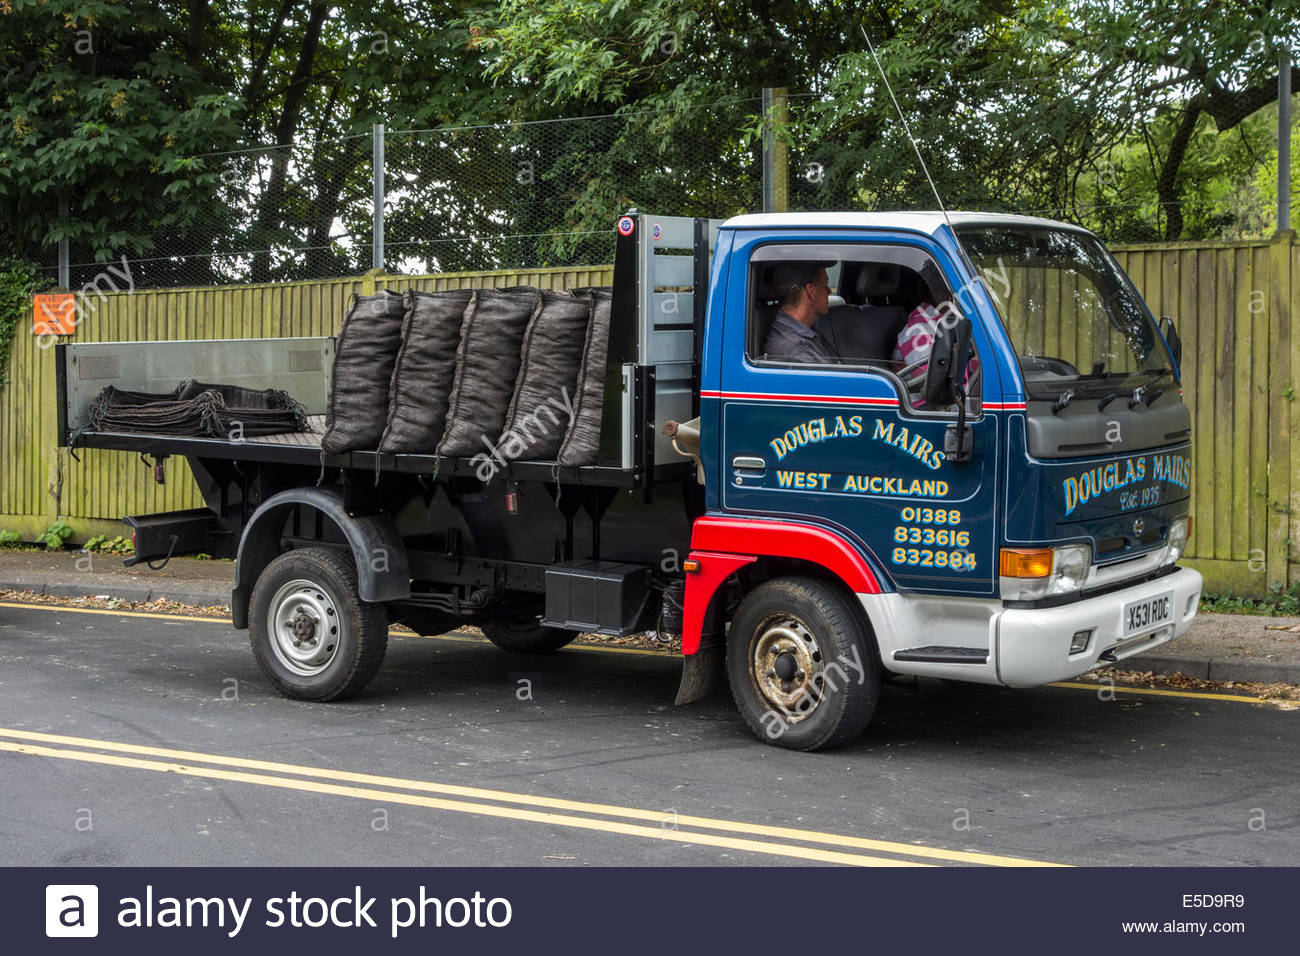 Coal lorry with full and empty sacks on the back - Stock Image